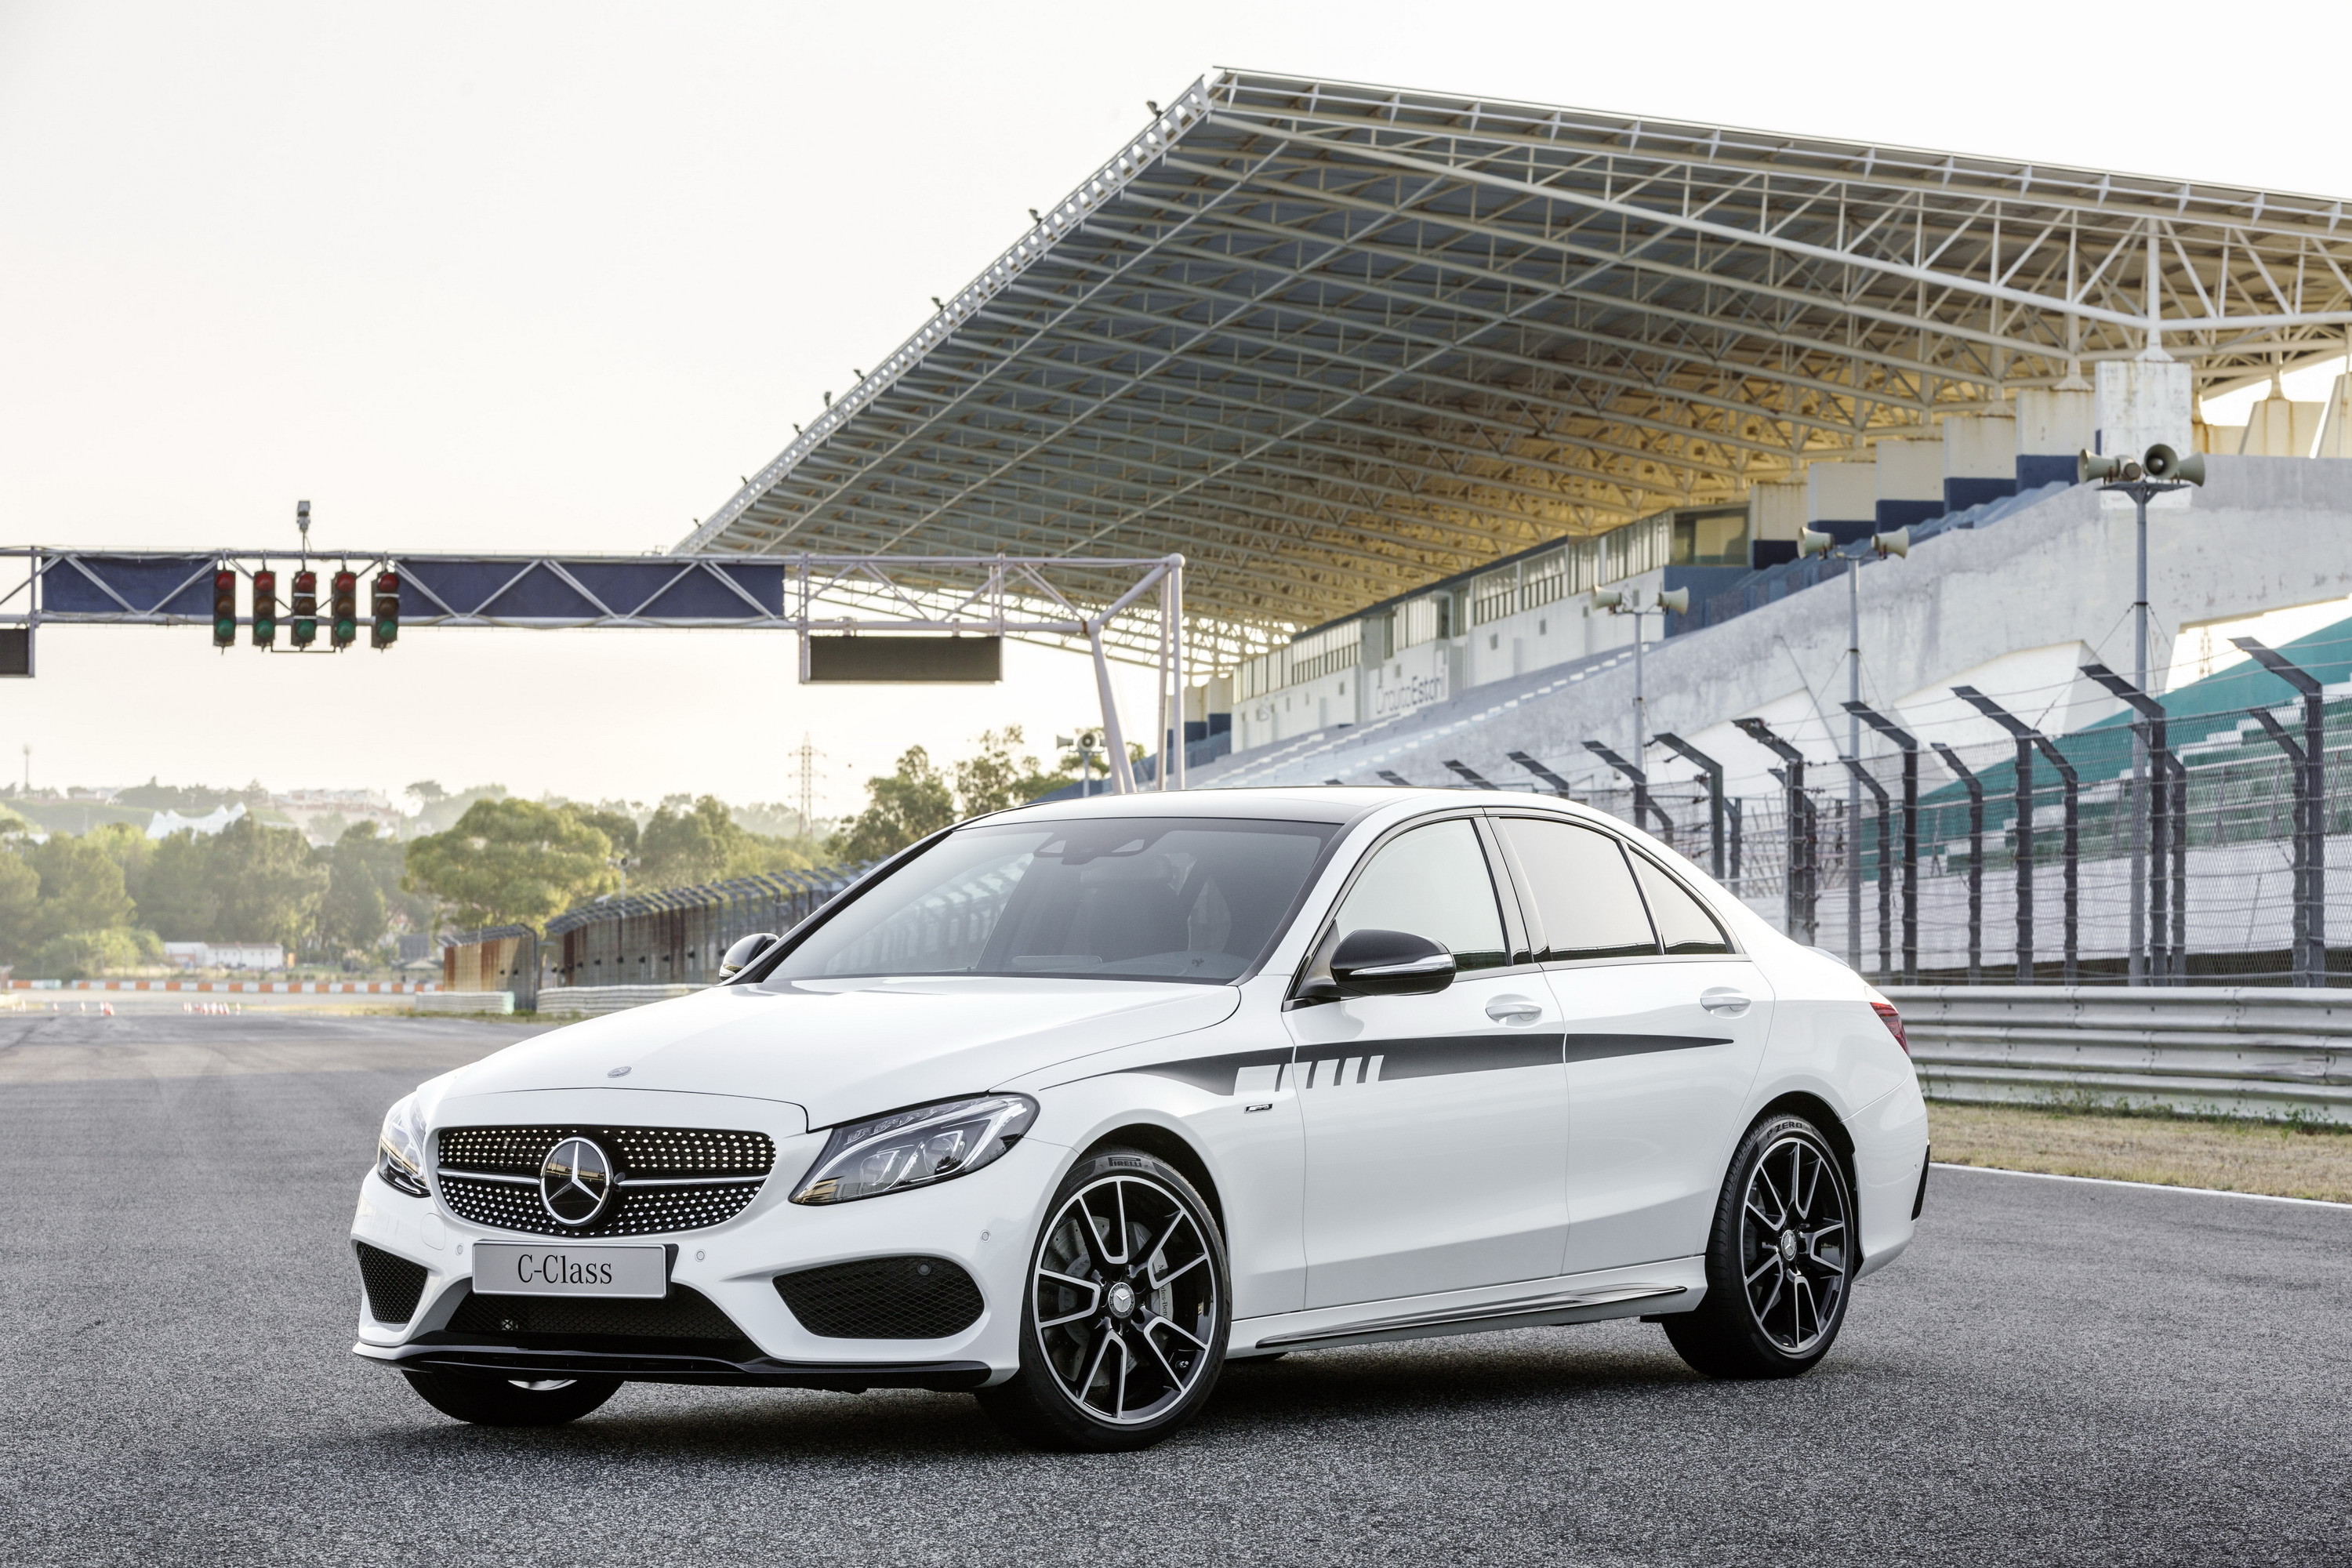 2015 Mercedes C-Class With AMG Accessories | Top Speed